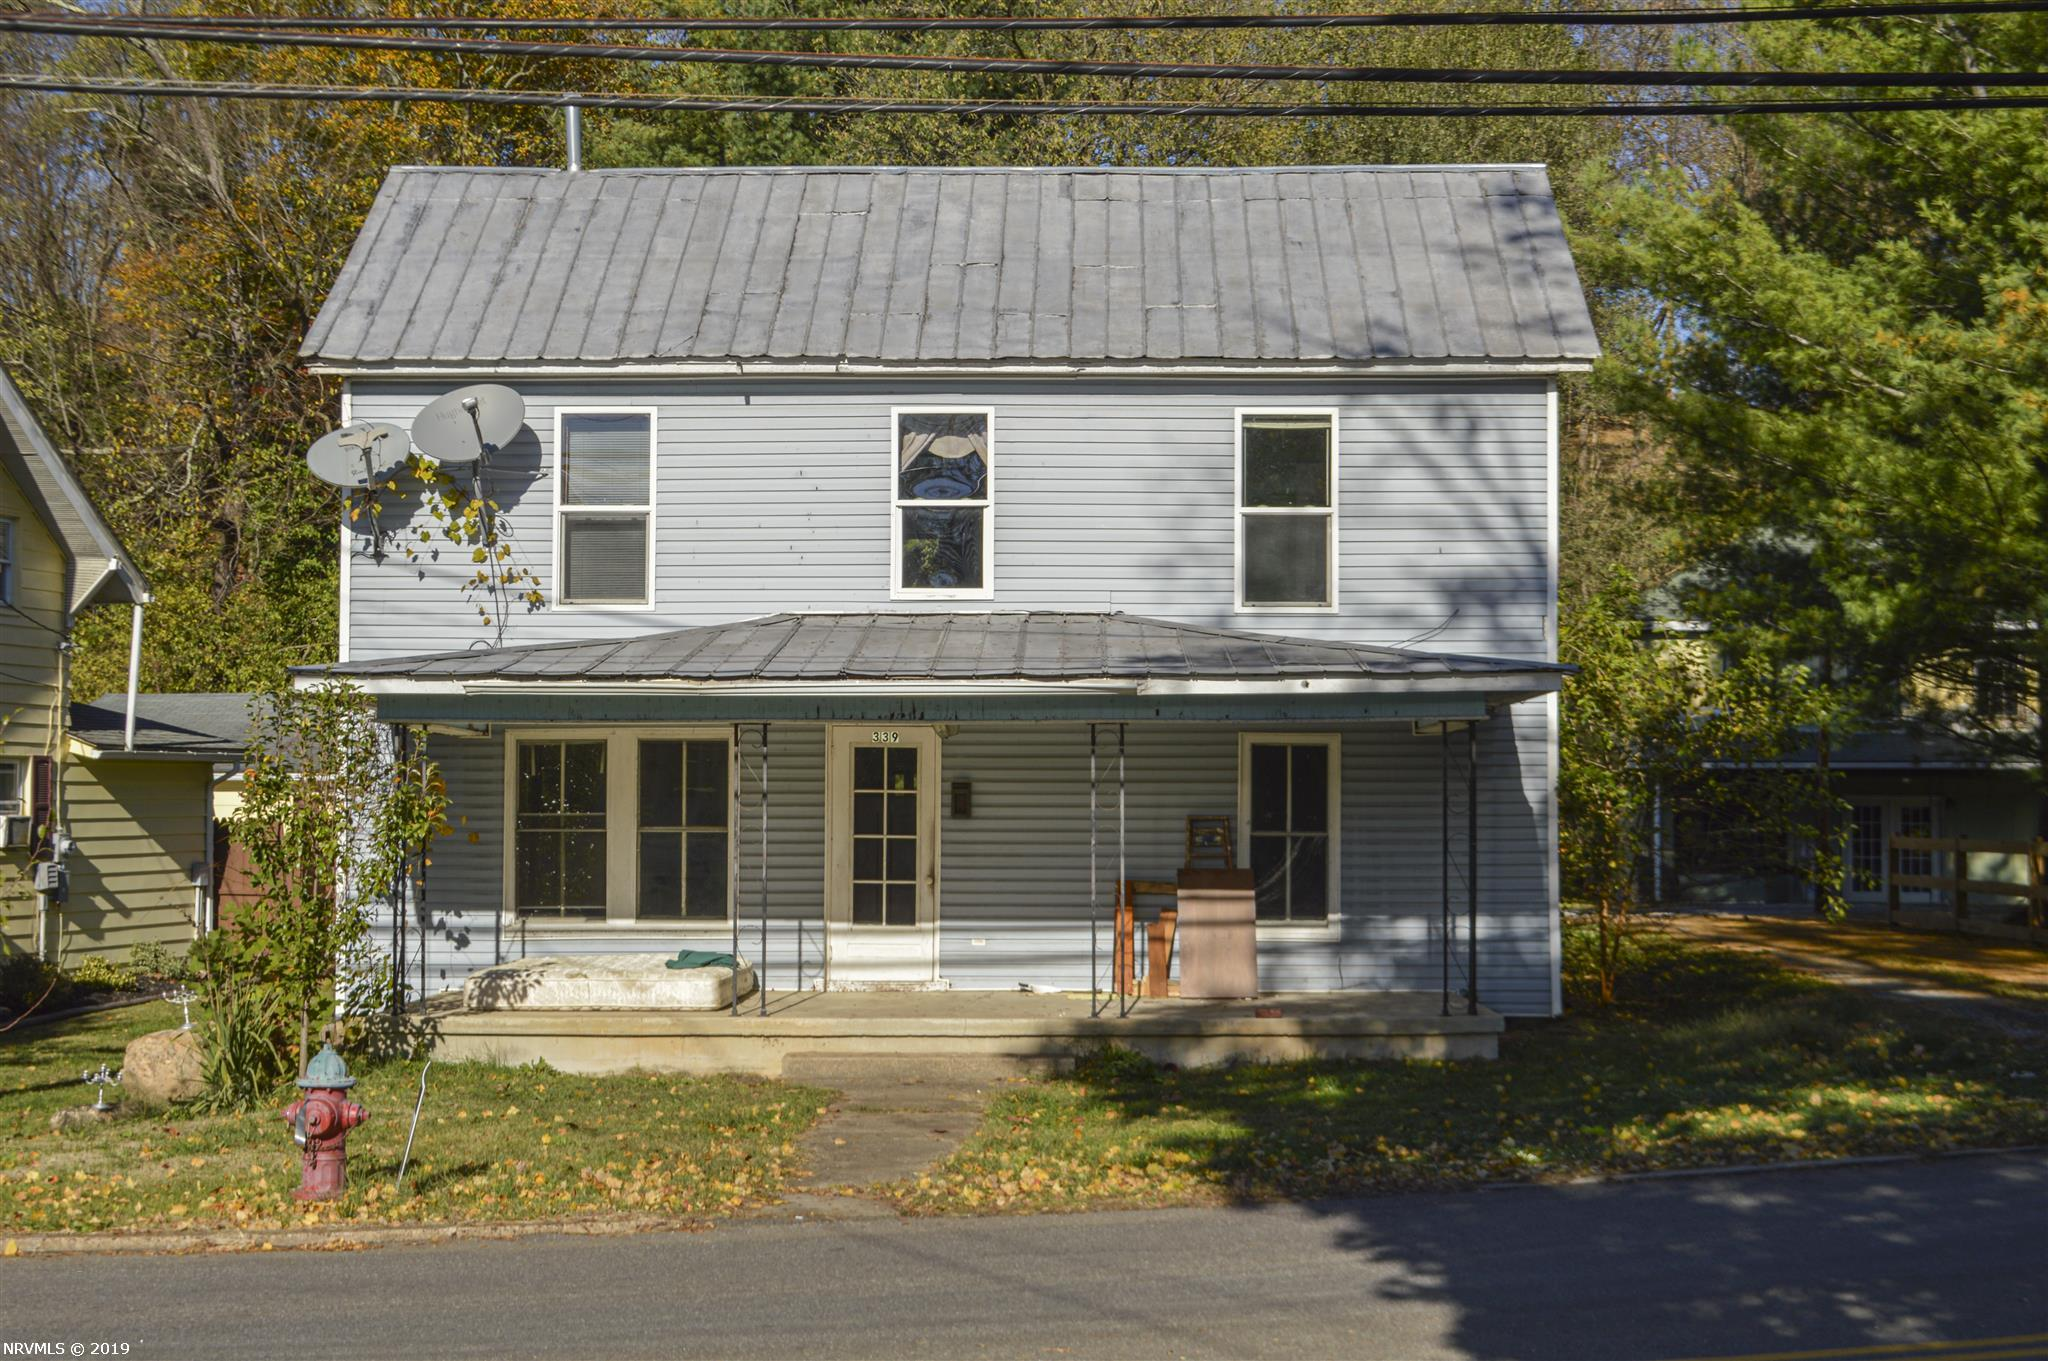 1900's style farmhouse with tons of charm. Within walking distance of local dining and shopping. Beautiful staircase. Perfect fixer upper opportunity! With a little TLC you can bring this classic back to life and make it your own.